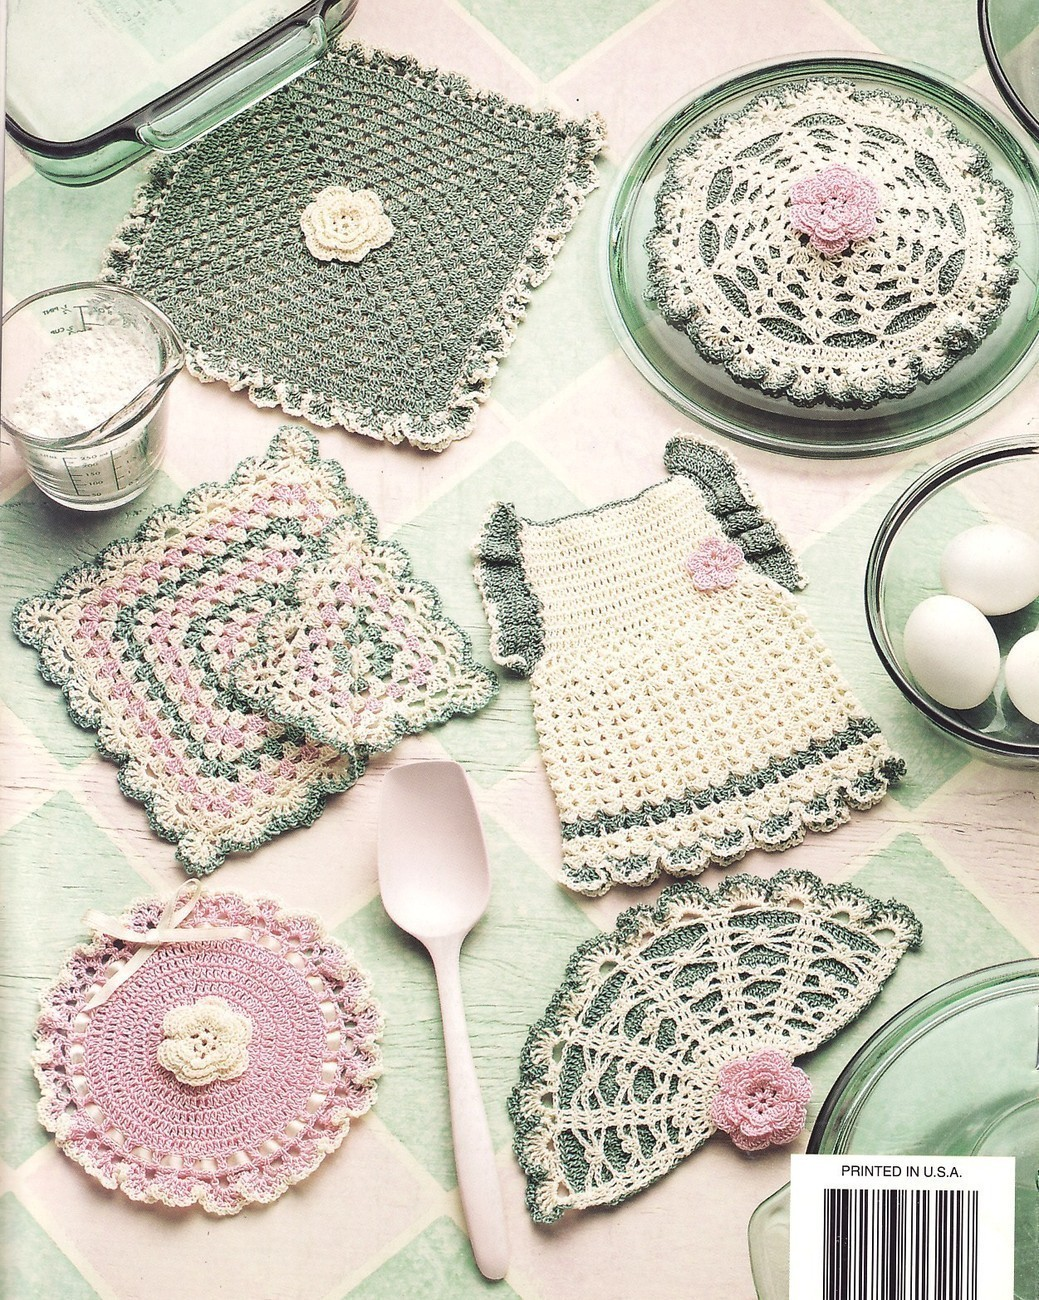 Free Crochet Patterns Annie s Attic : Annie s Attic Crochet Patterns Browse Patterns